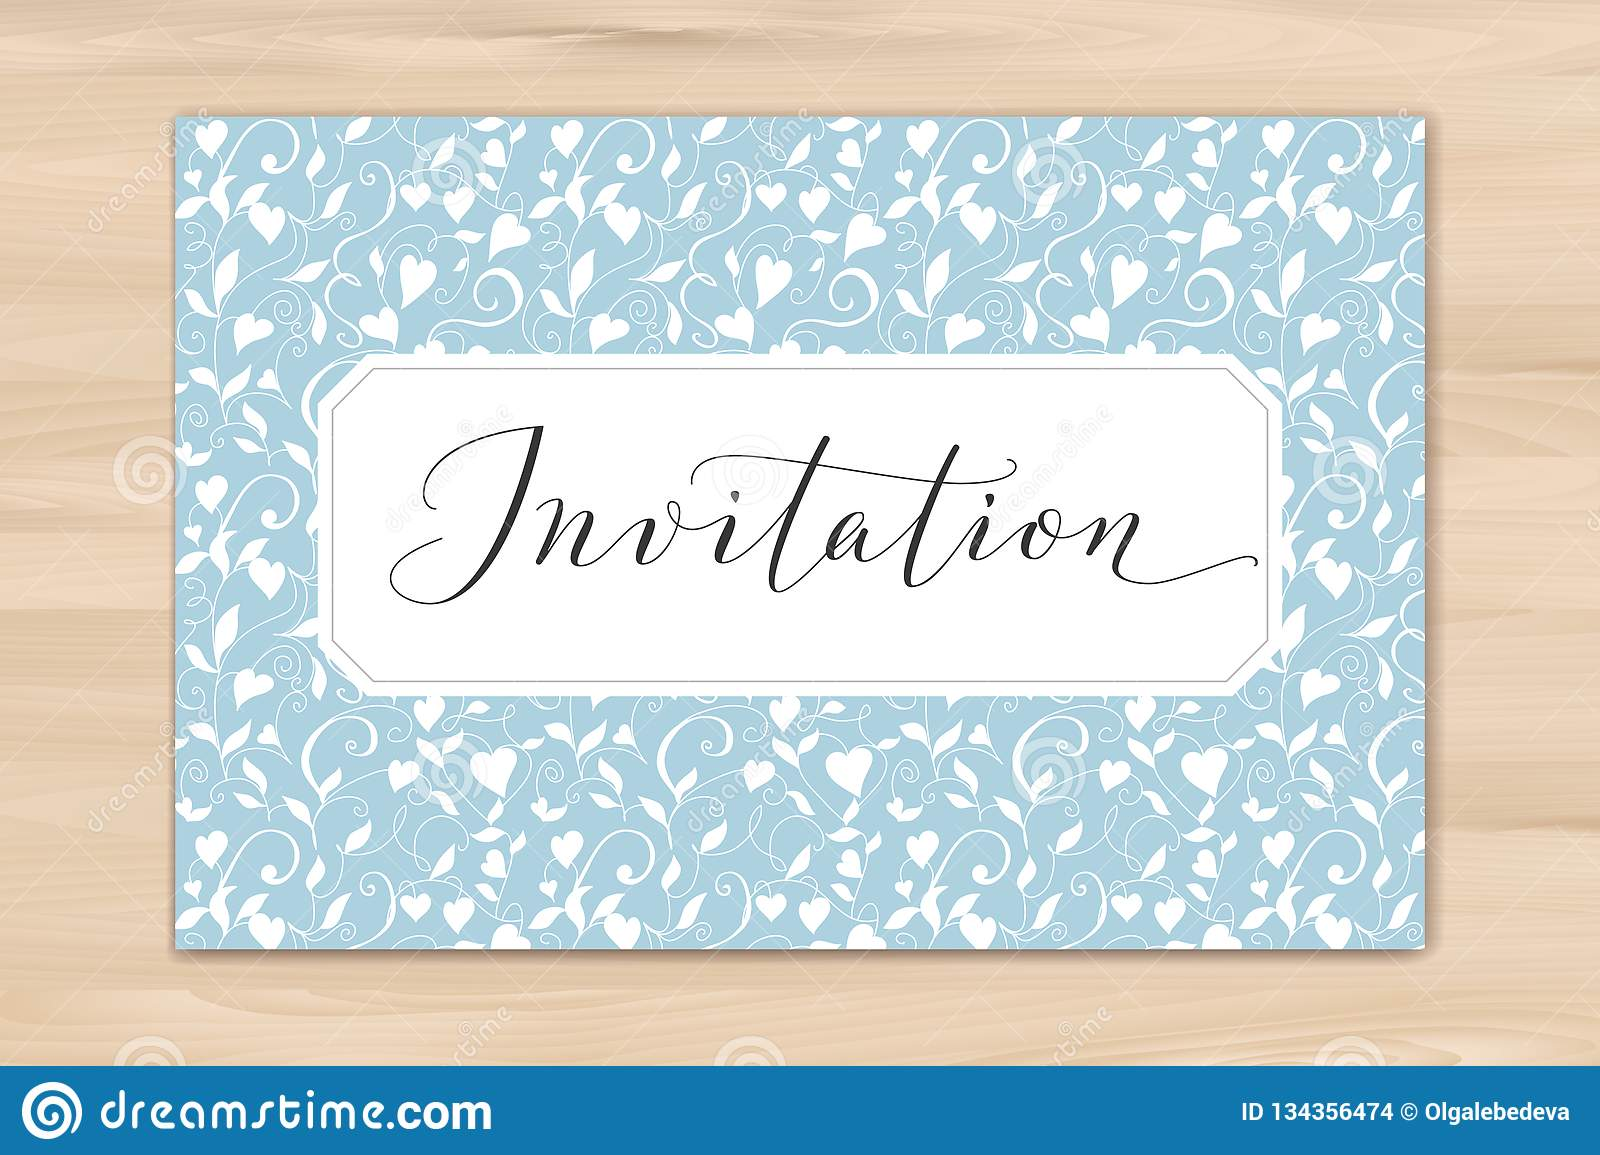 Invitation Card With Hand Written Custom Calligraphy And Hearts